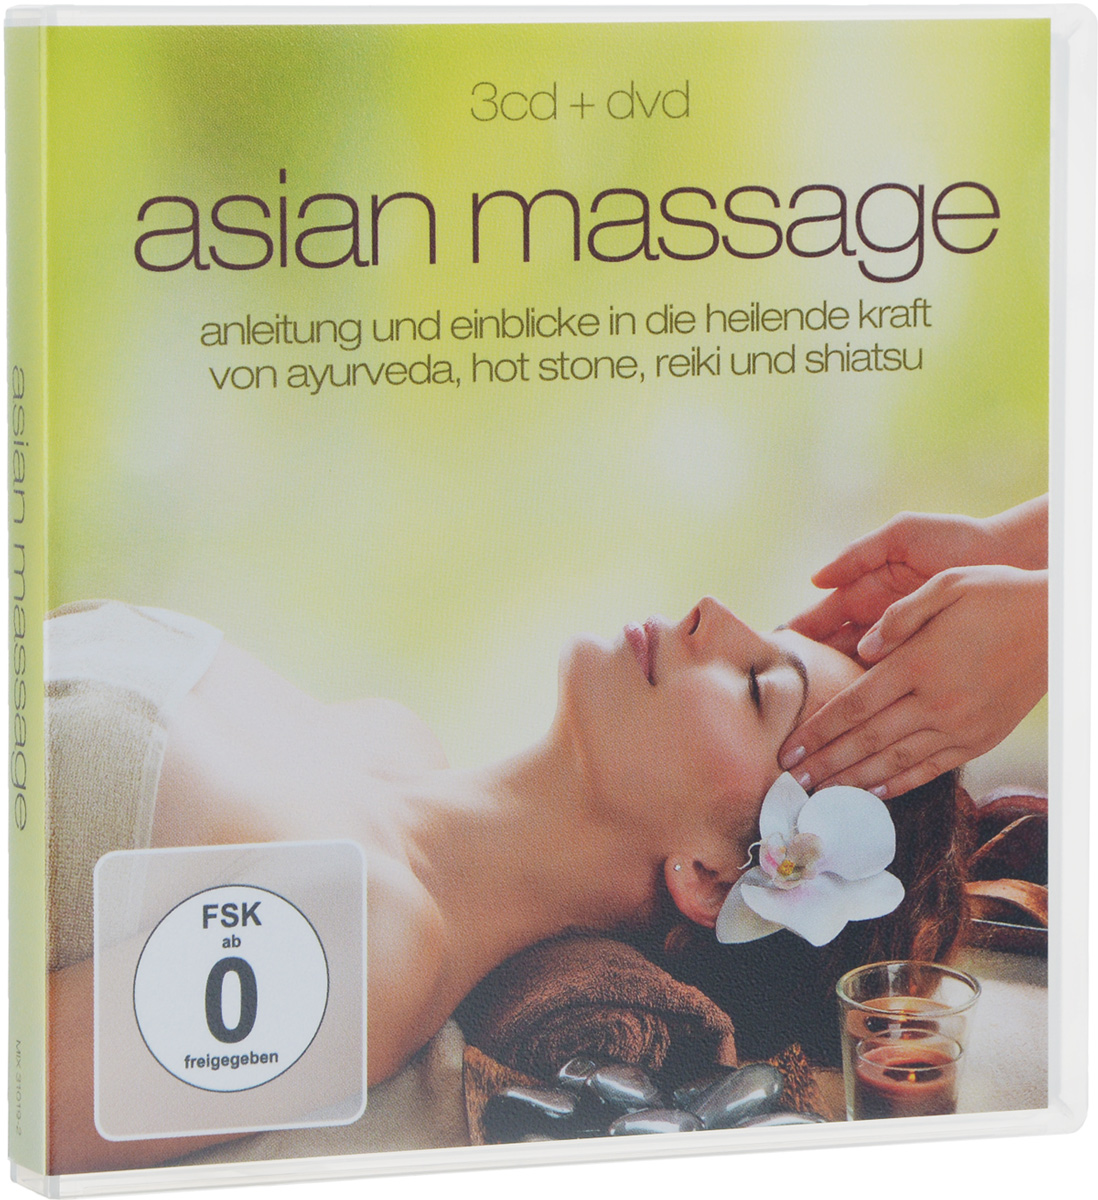 Asian Massage (3 CD + DVD)